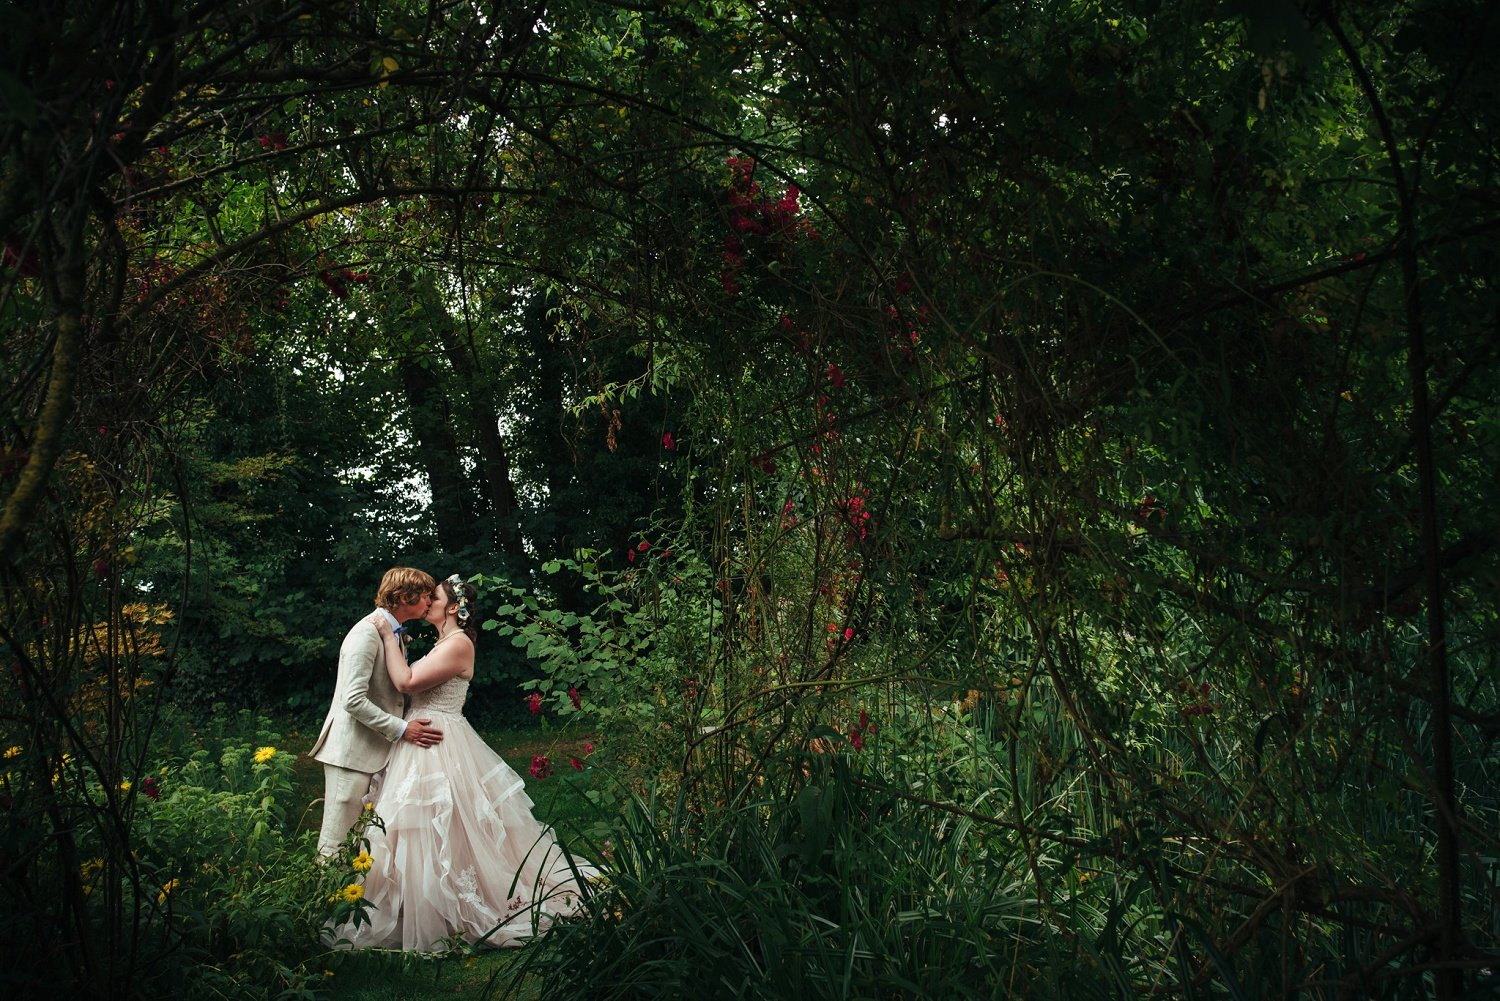 A wedding in the middle of nature